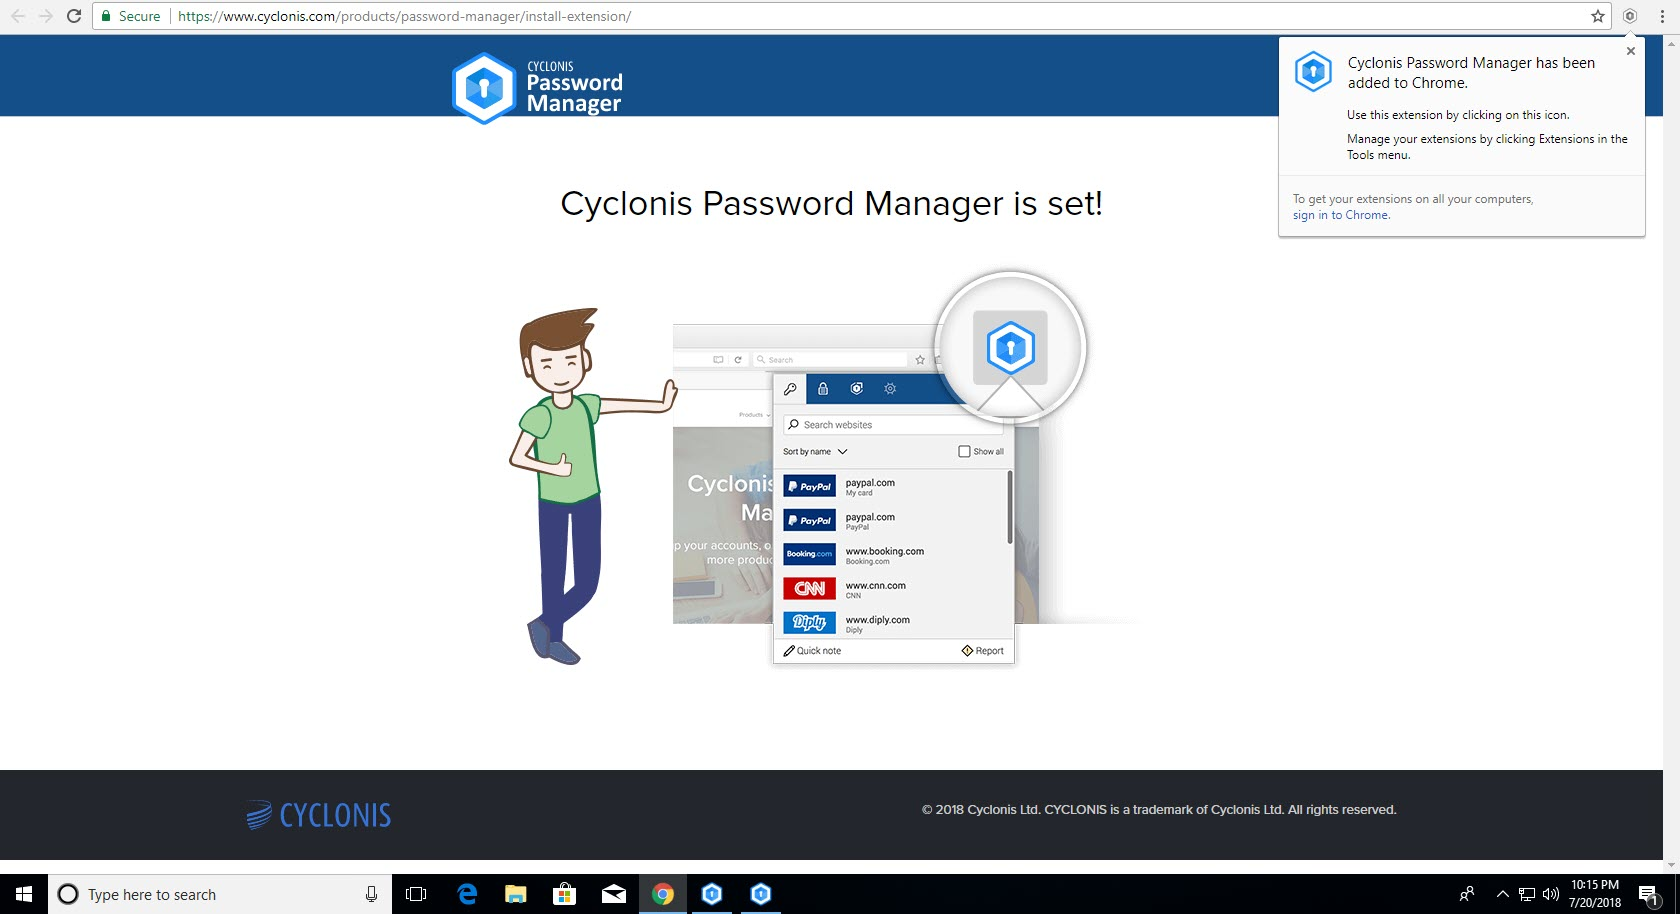 Cyclonis Password Manager - Added to Chrome